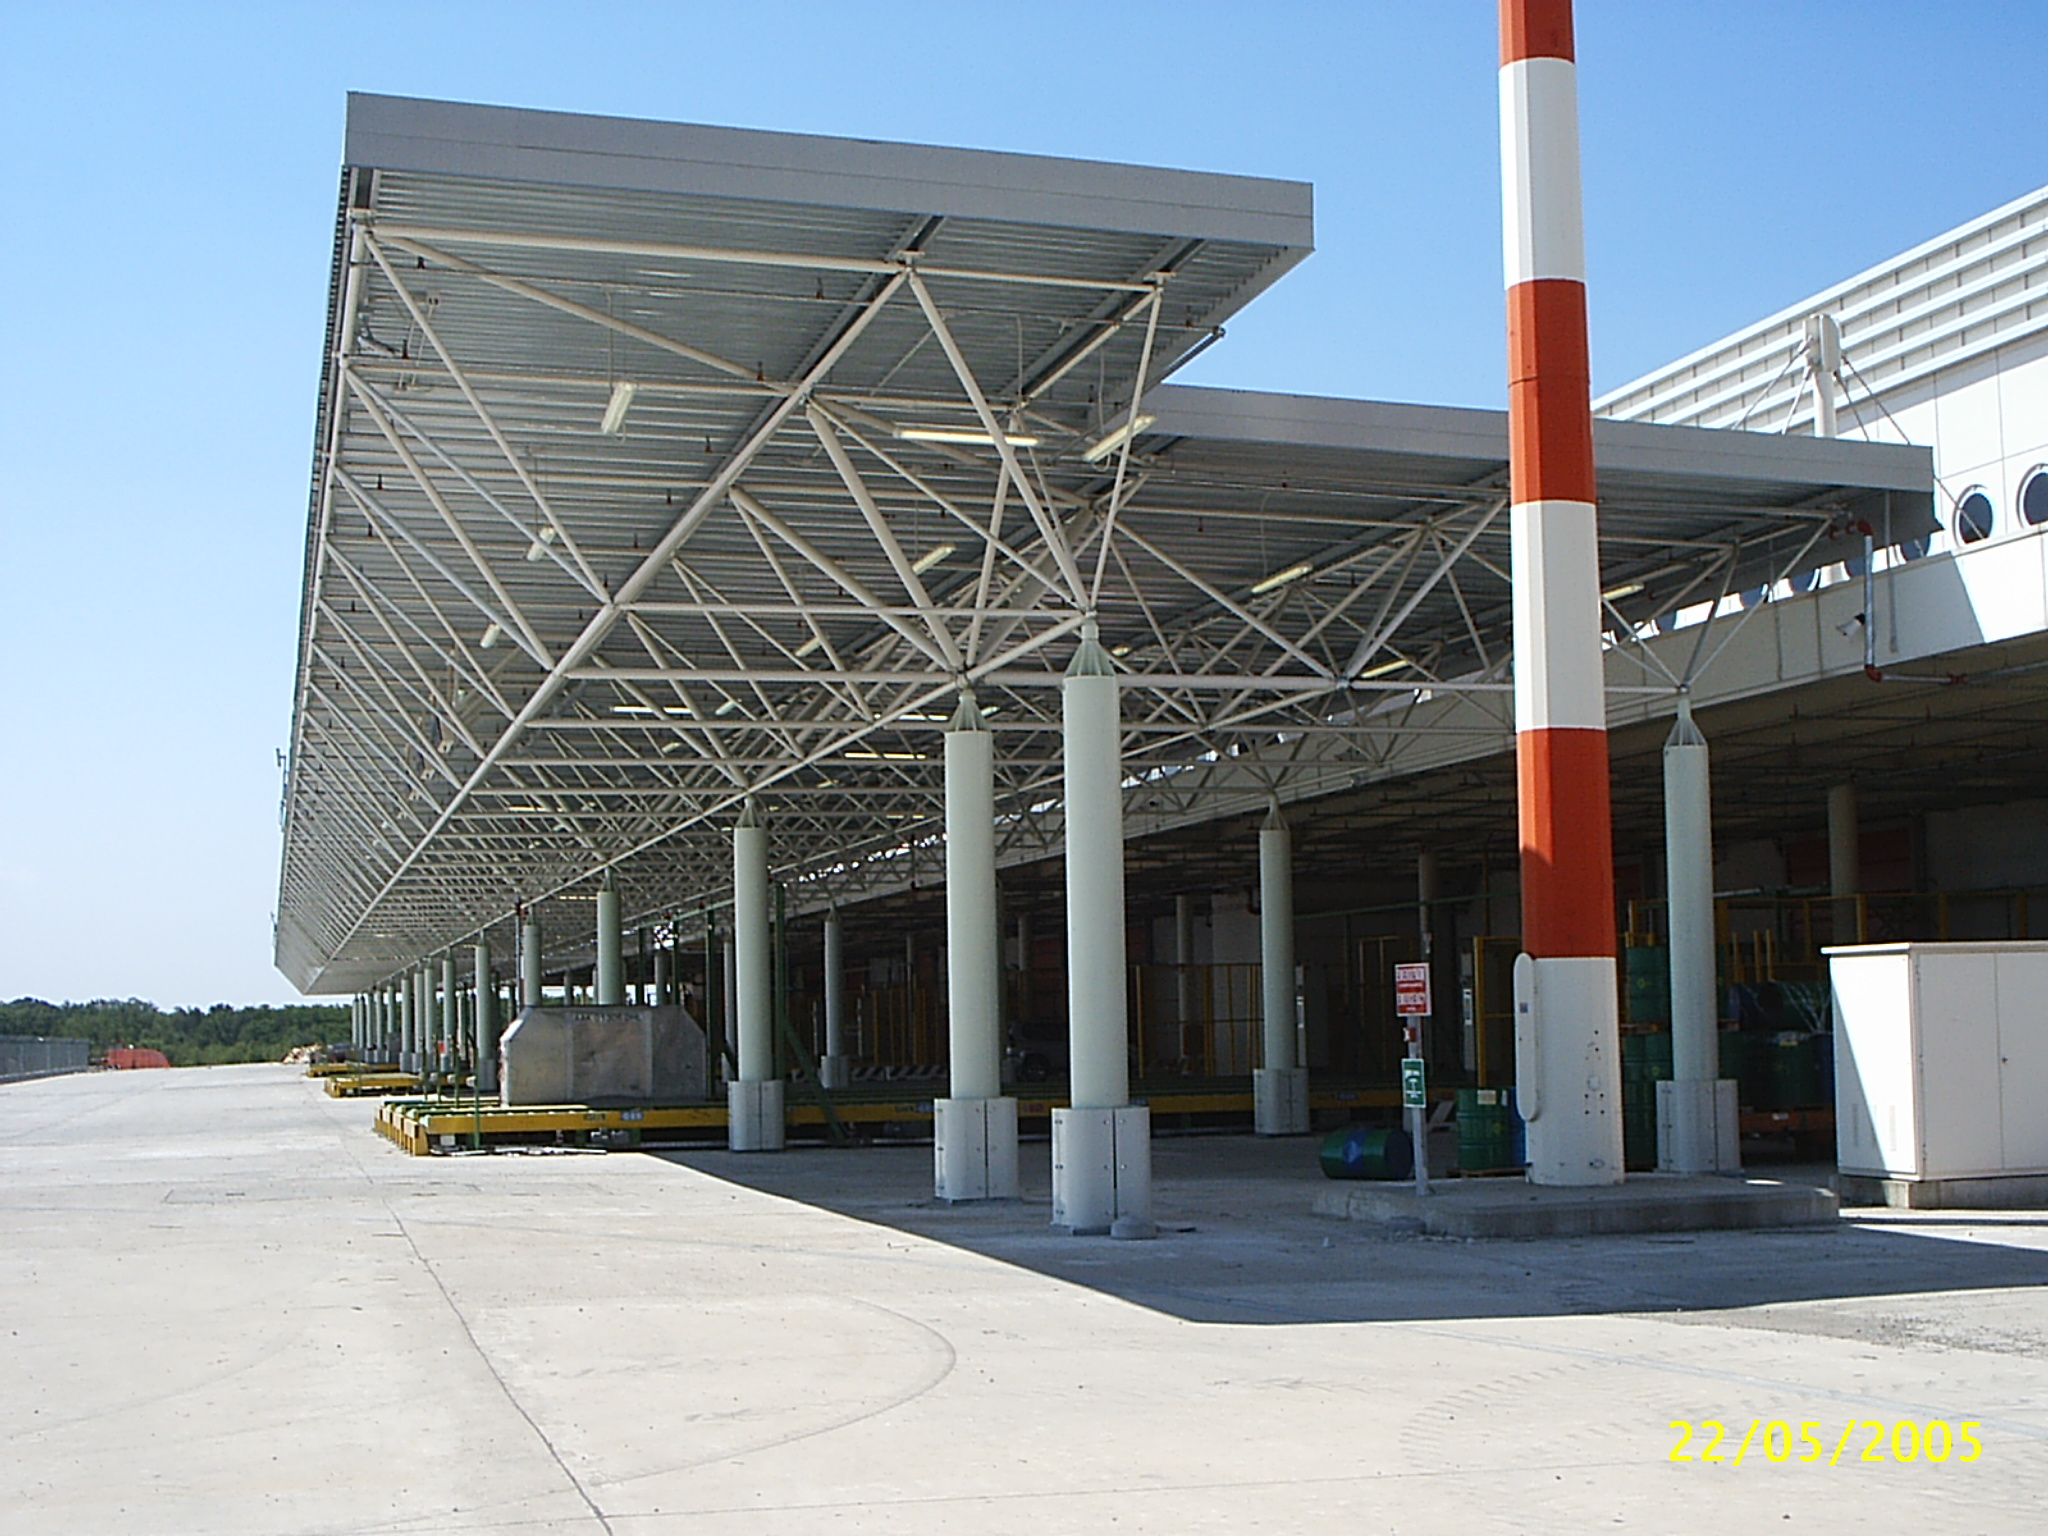 Cargo City Malpensa